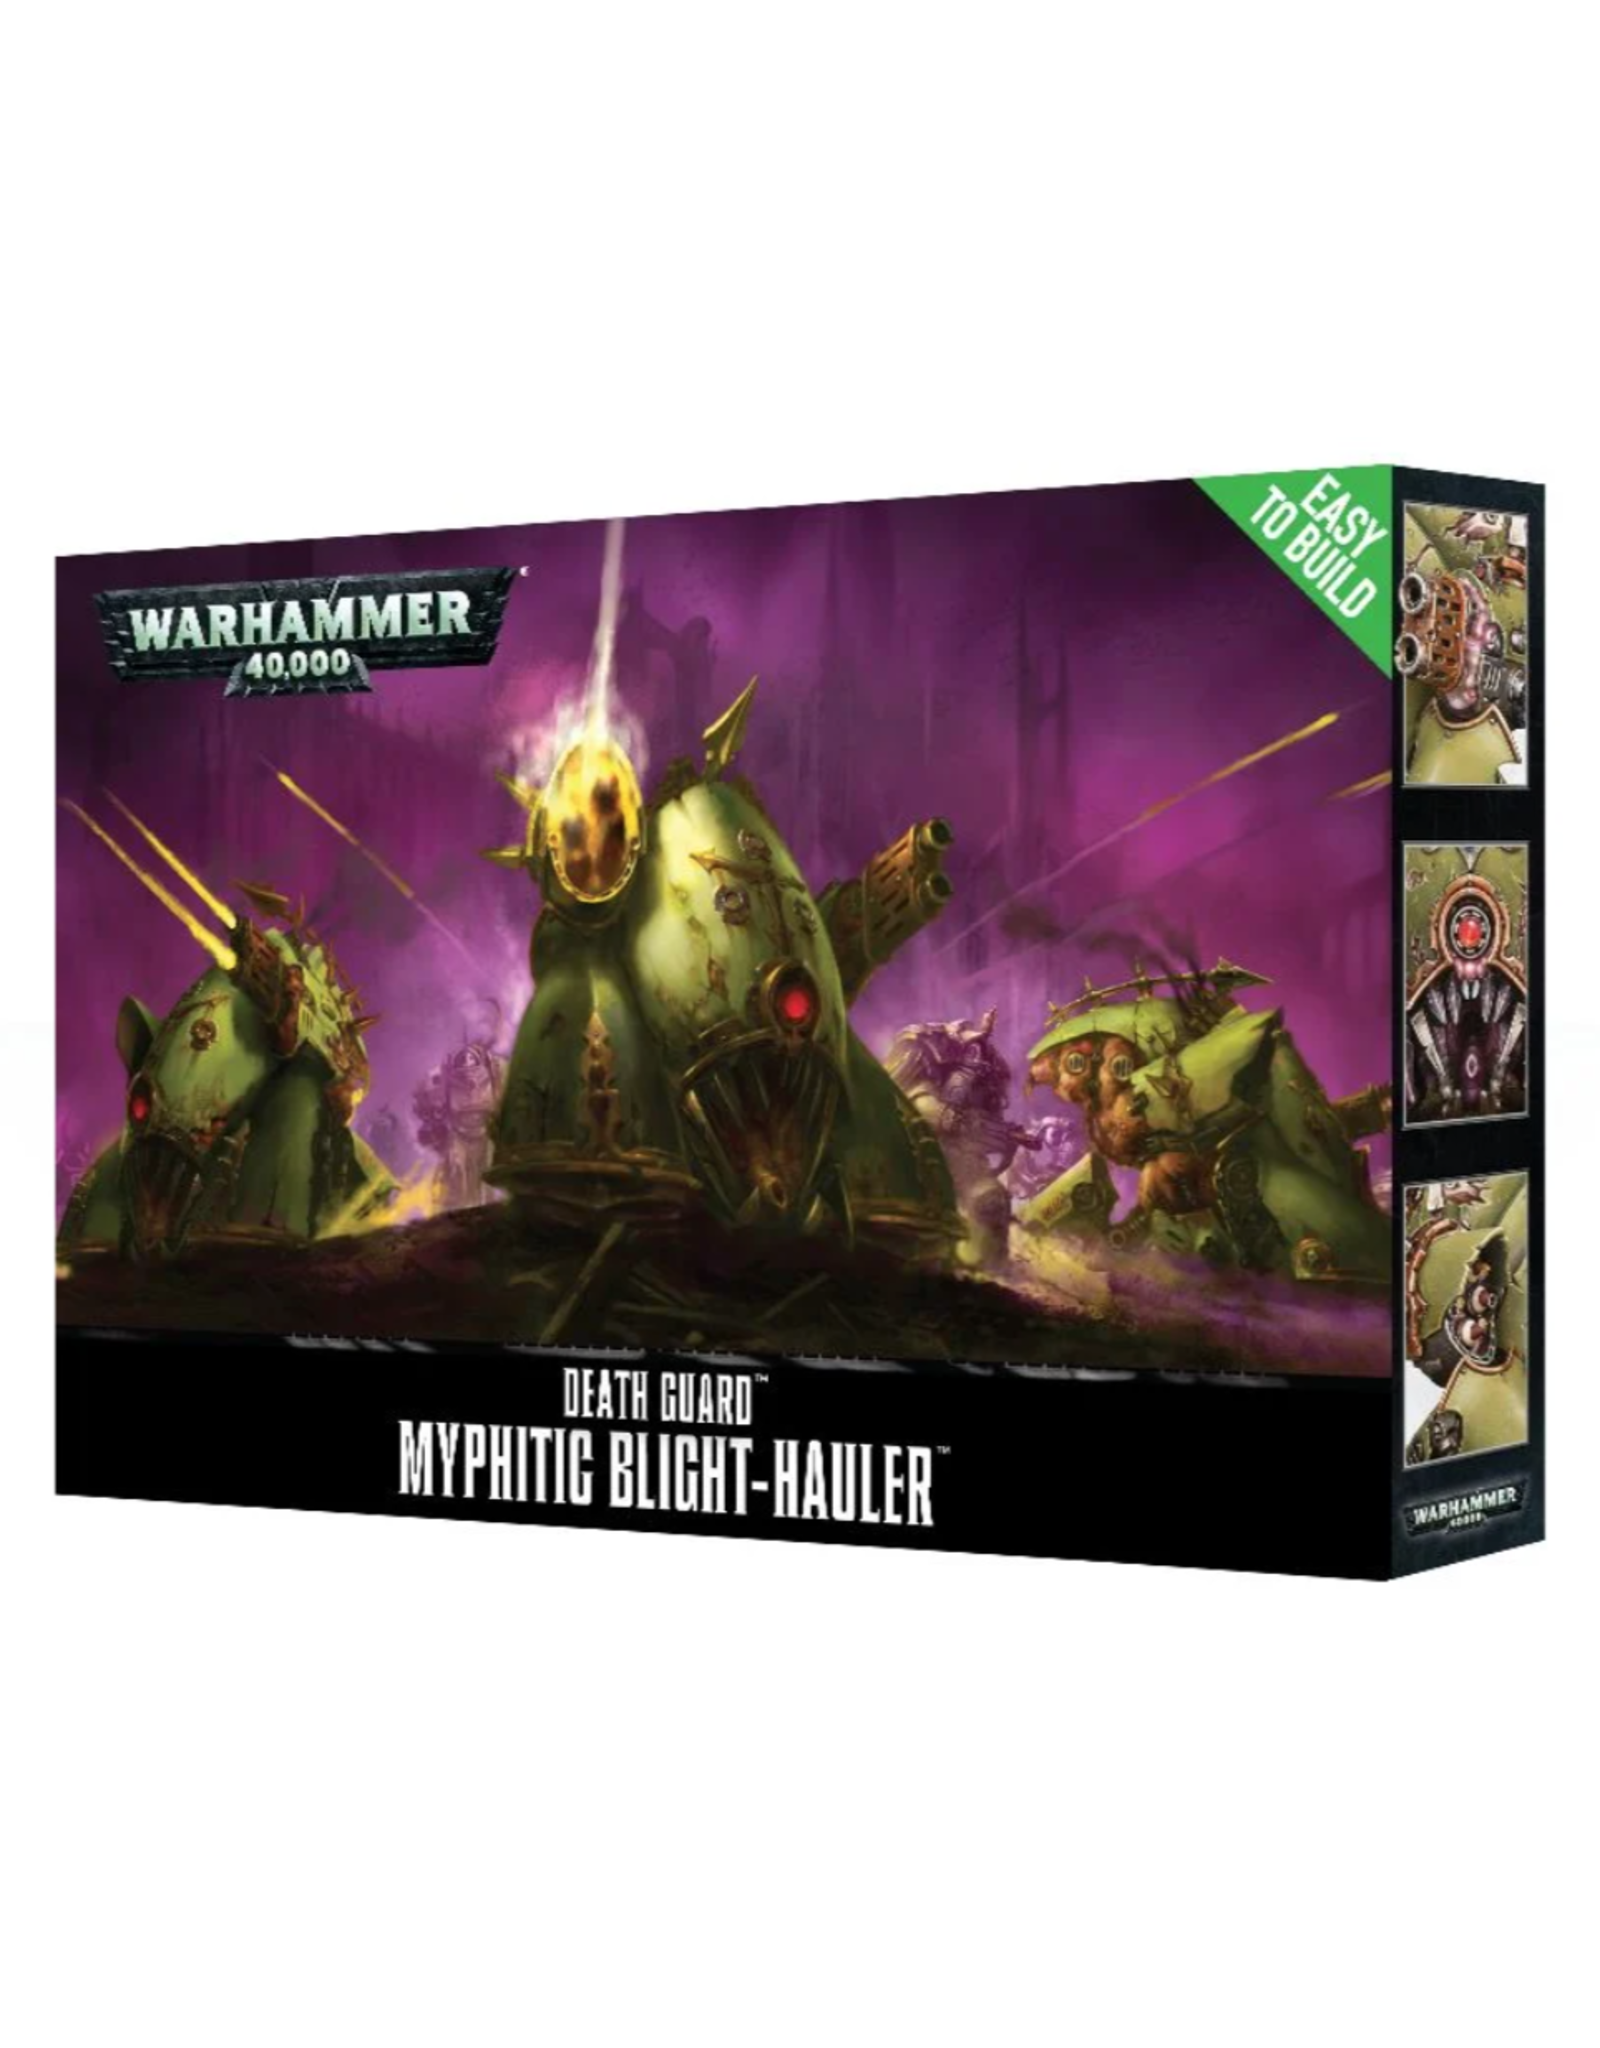 Warhammer 40K Chaos Easy to Build Death Guard Myphitic Blight-Hauler